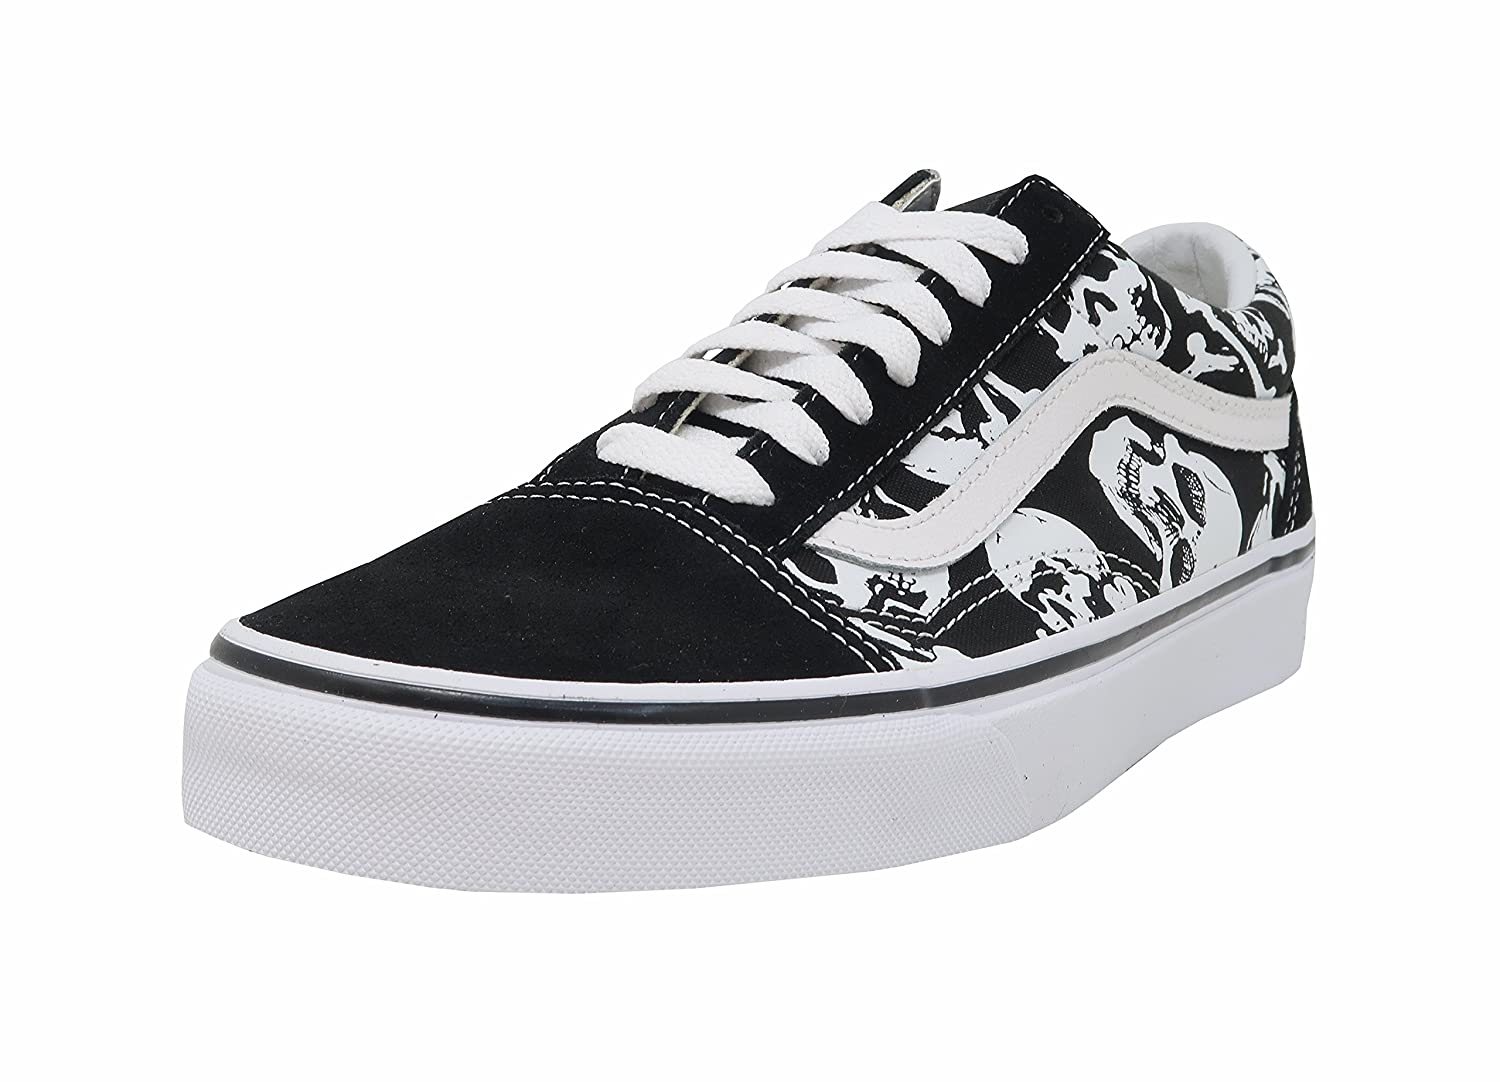 Vans Skulls Old Skool Unisex Mens Skateboarding-Shoes VN-0A3 B078Y8CCZ3 7.5 M US Women / 6 M US Men|Black/White